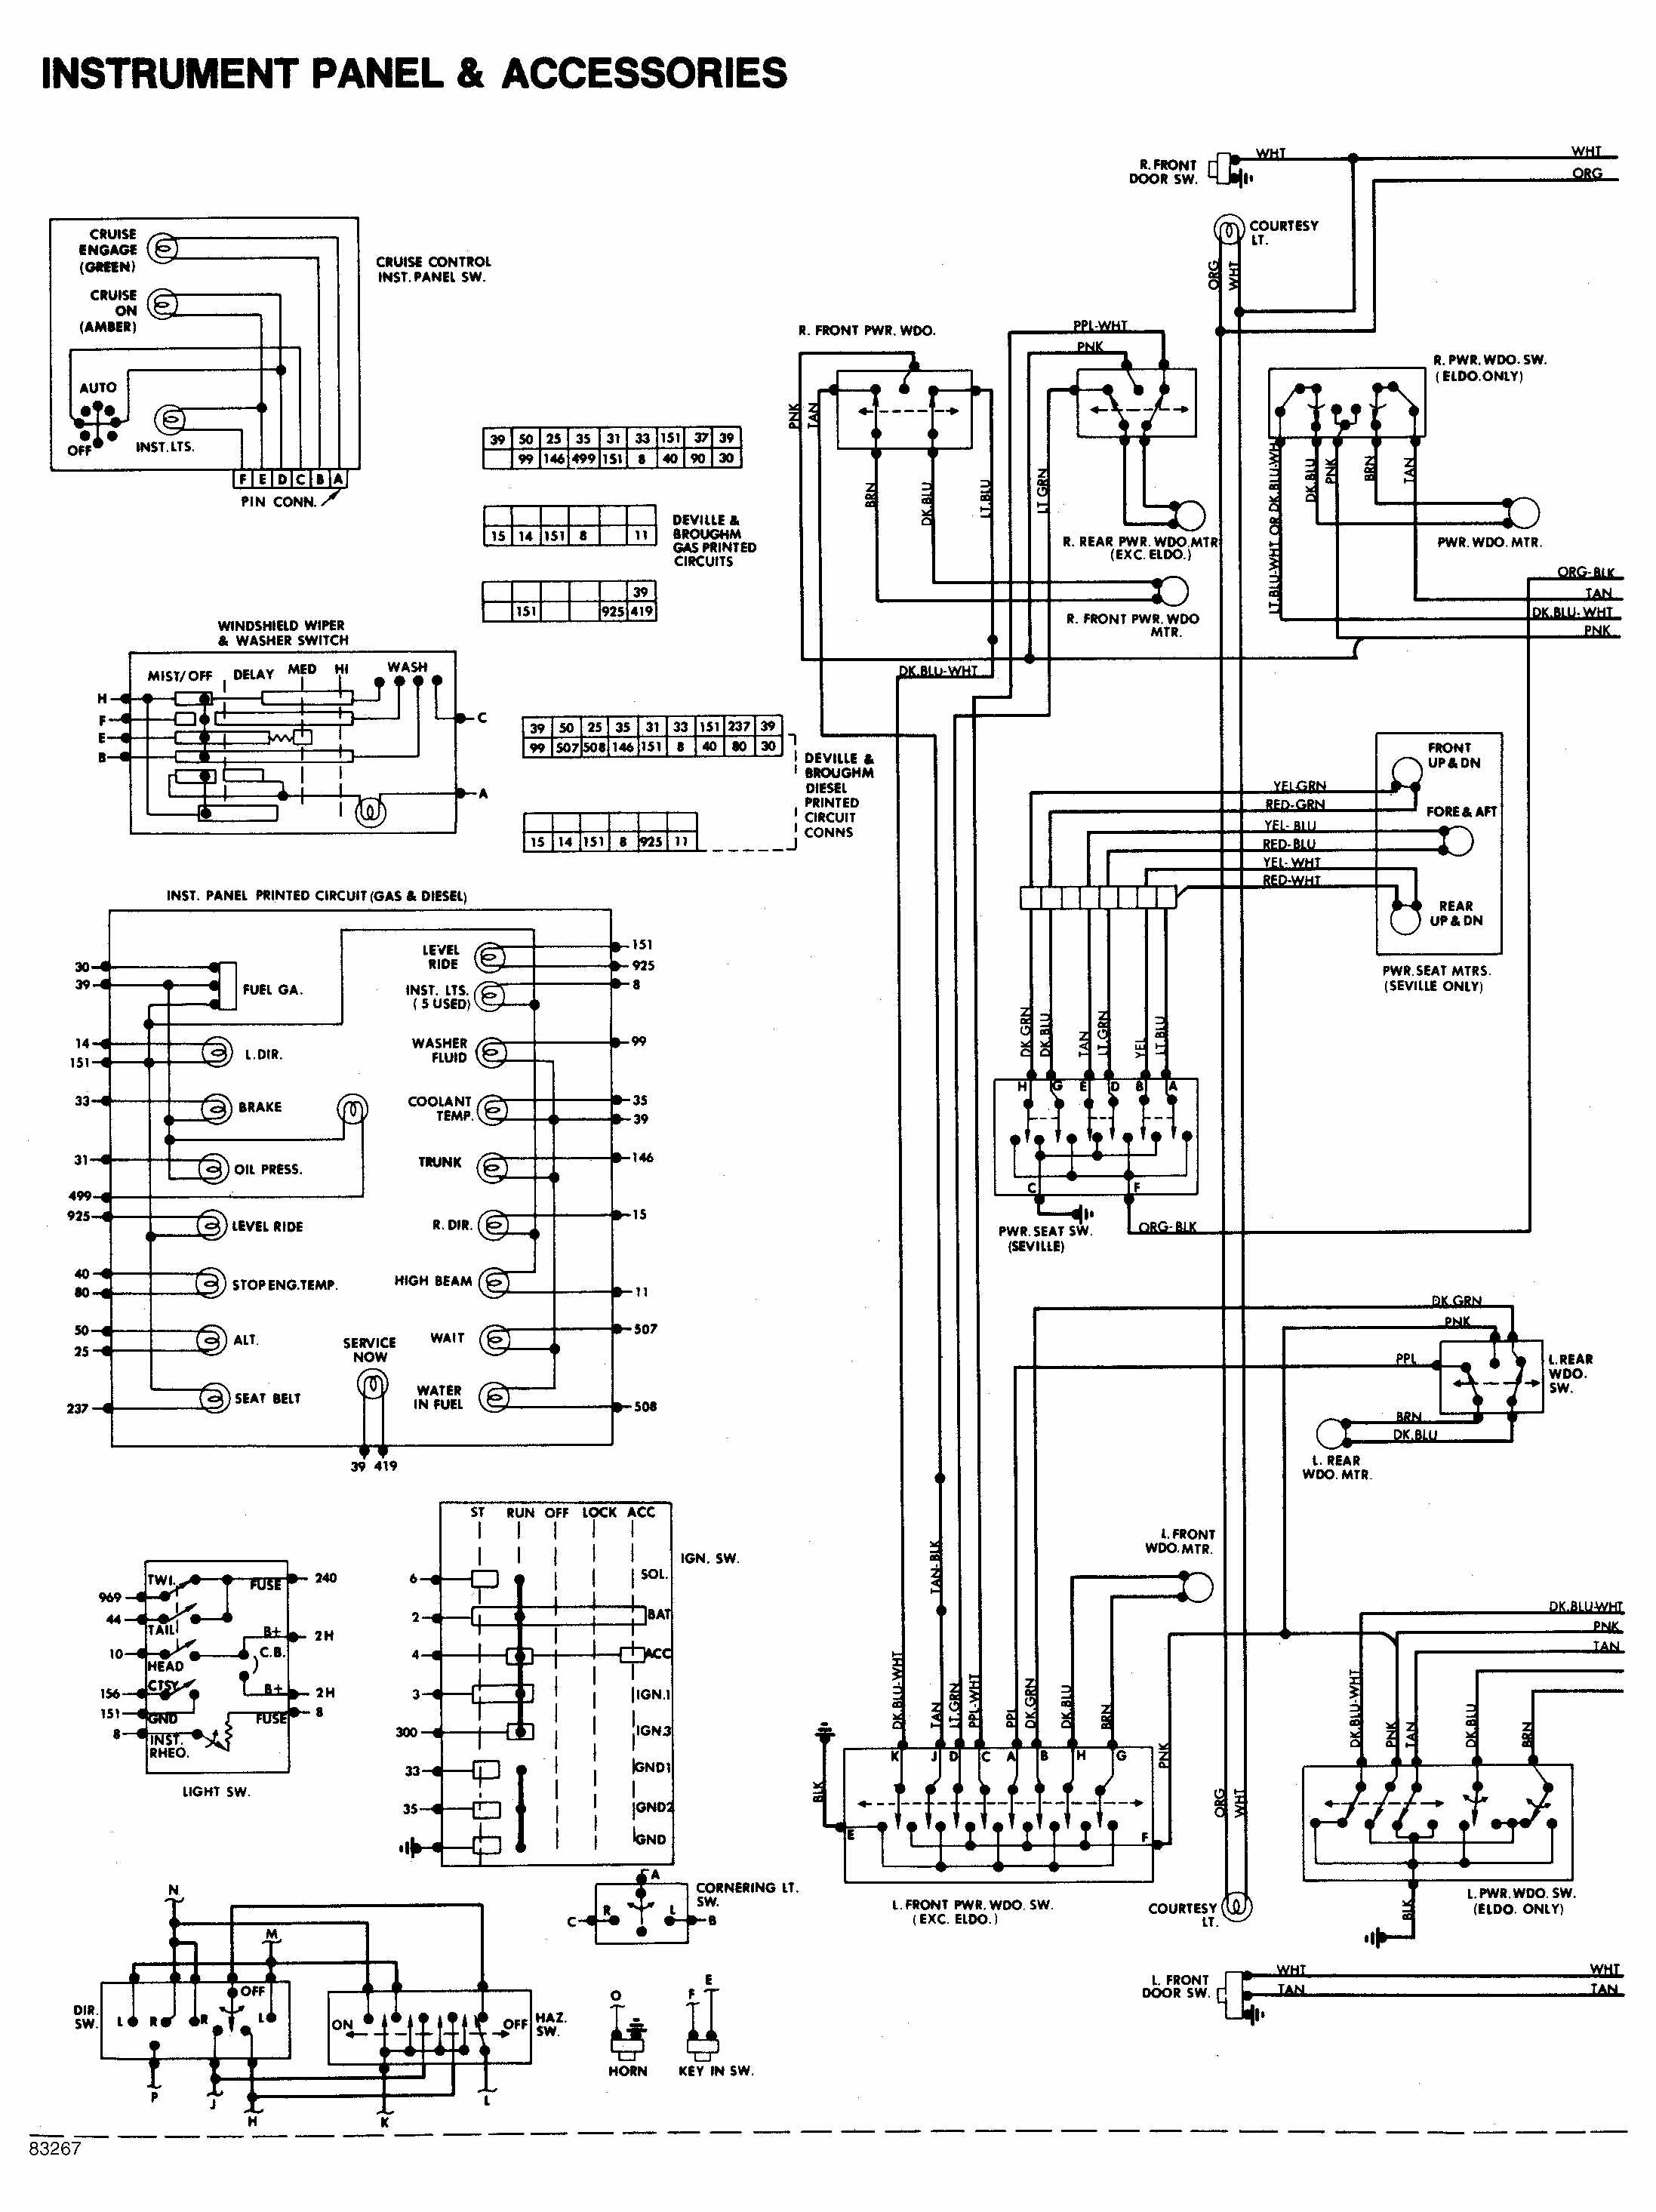 Hyundai Santa Fe Radio Wiring Diagram And as well Maxresdefault moreover B F D besides B F D further Mitsubishi Eclipse Gt Fuse Box Map. on 2003 hyundai santa fe fuse box diagram